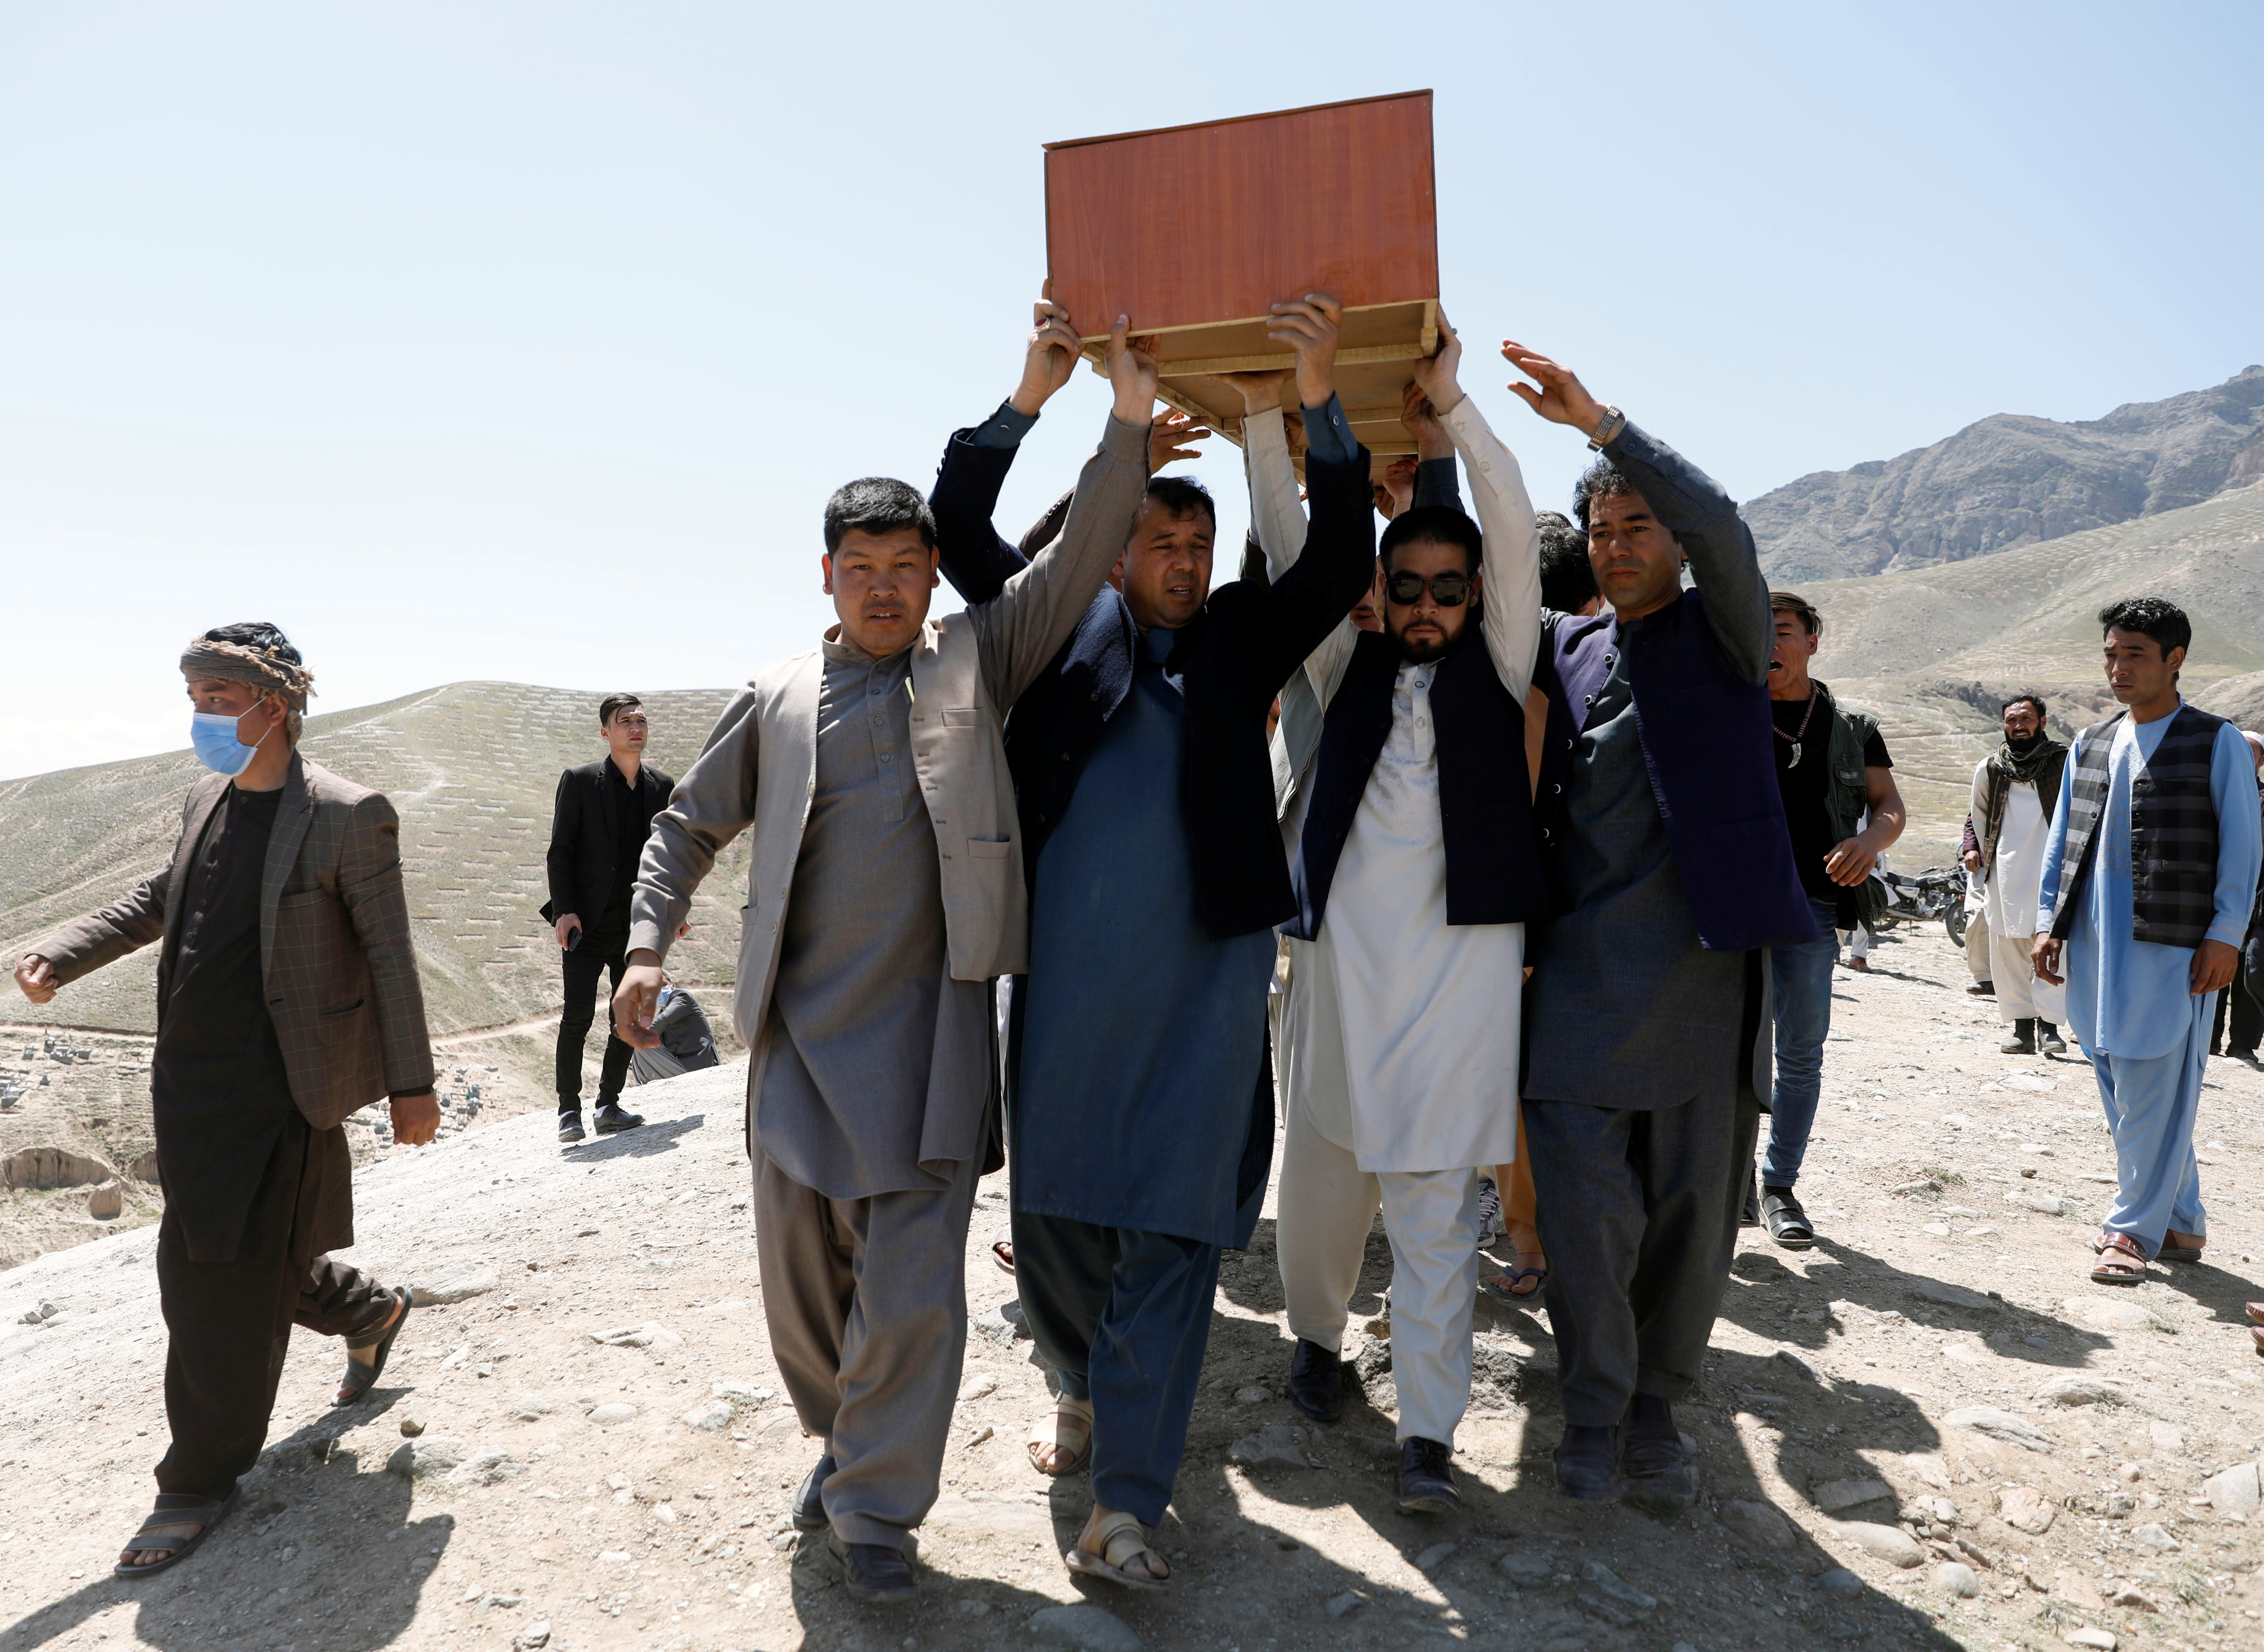 Afghan men carry the coffin of one of the victims of yesterday's explosion in Kabul, Afghanistan May 9, 2021. REUTERS/Stringer